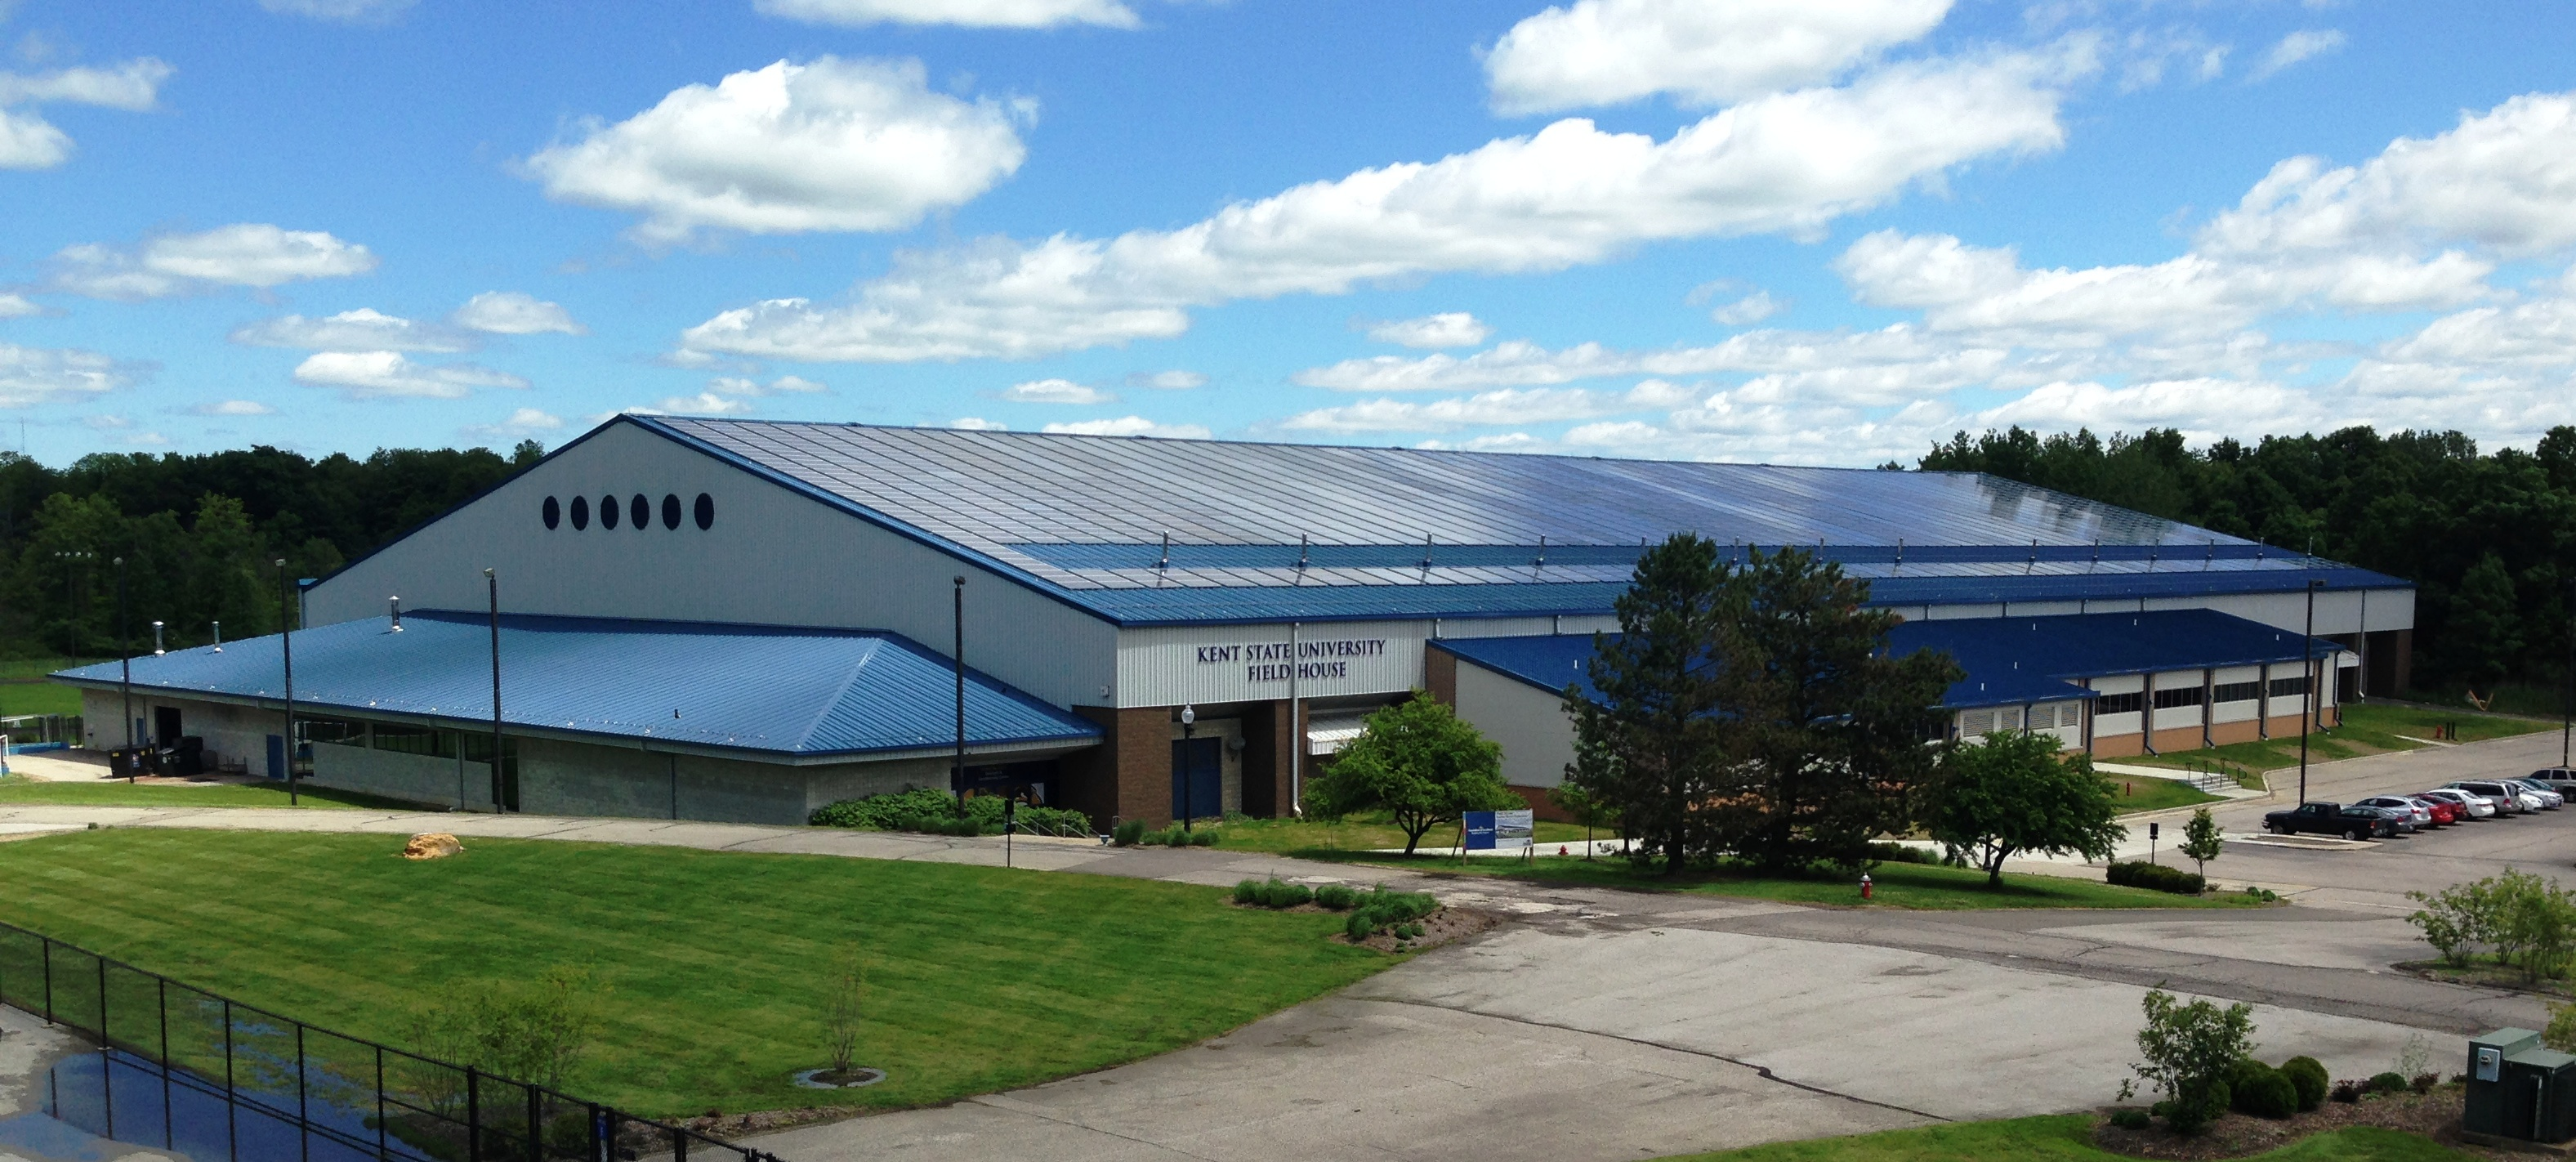 File:Kent State Field House 2014.JPG - Wikimedia Commons on kent state football field, kent state women's soccer team, kent state ice arena, kent state art building, kent state indoor track, kent state baseball stadium, kent state football division,